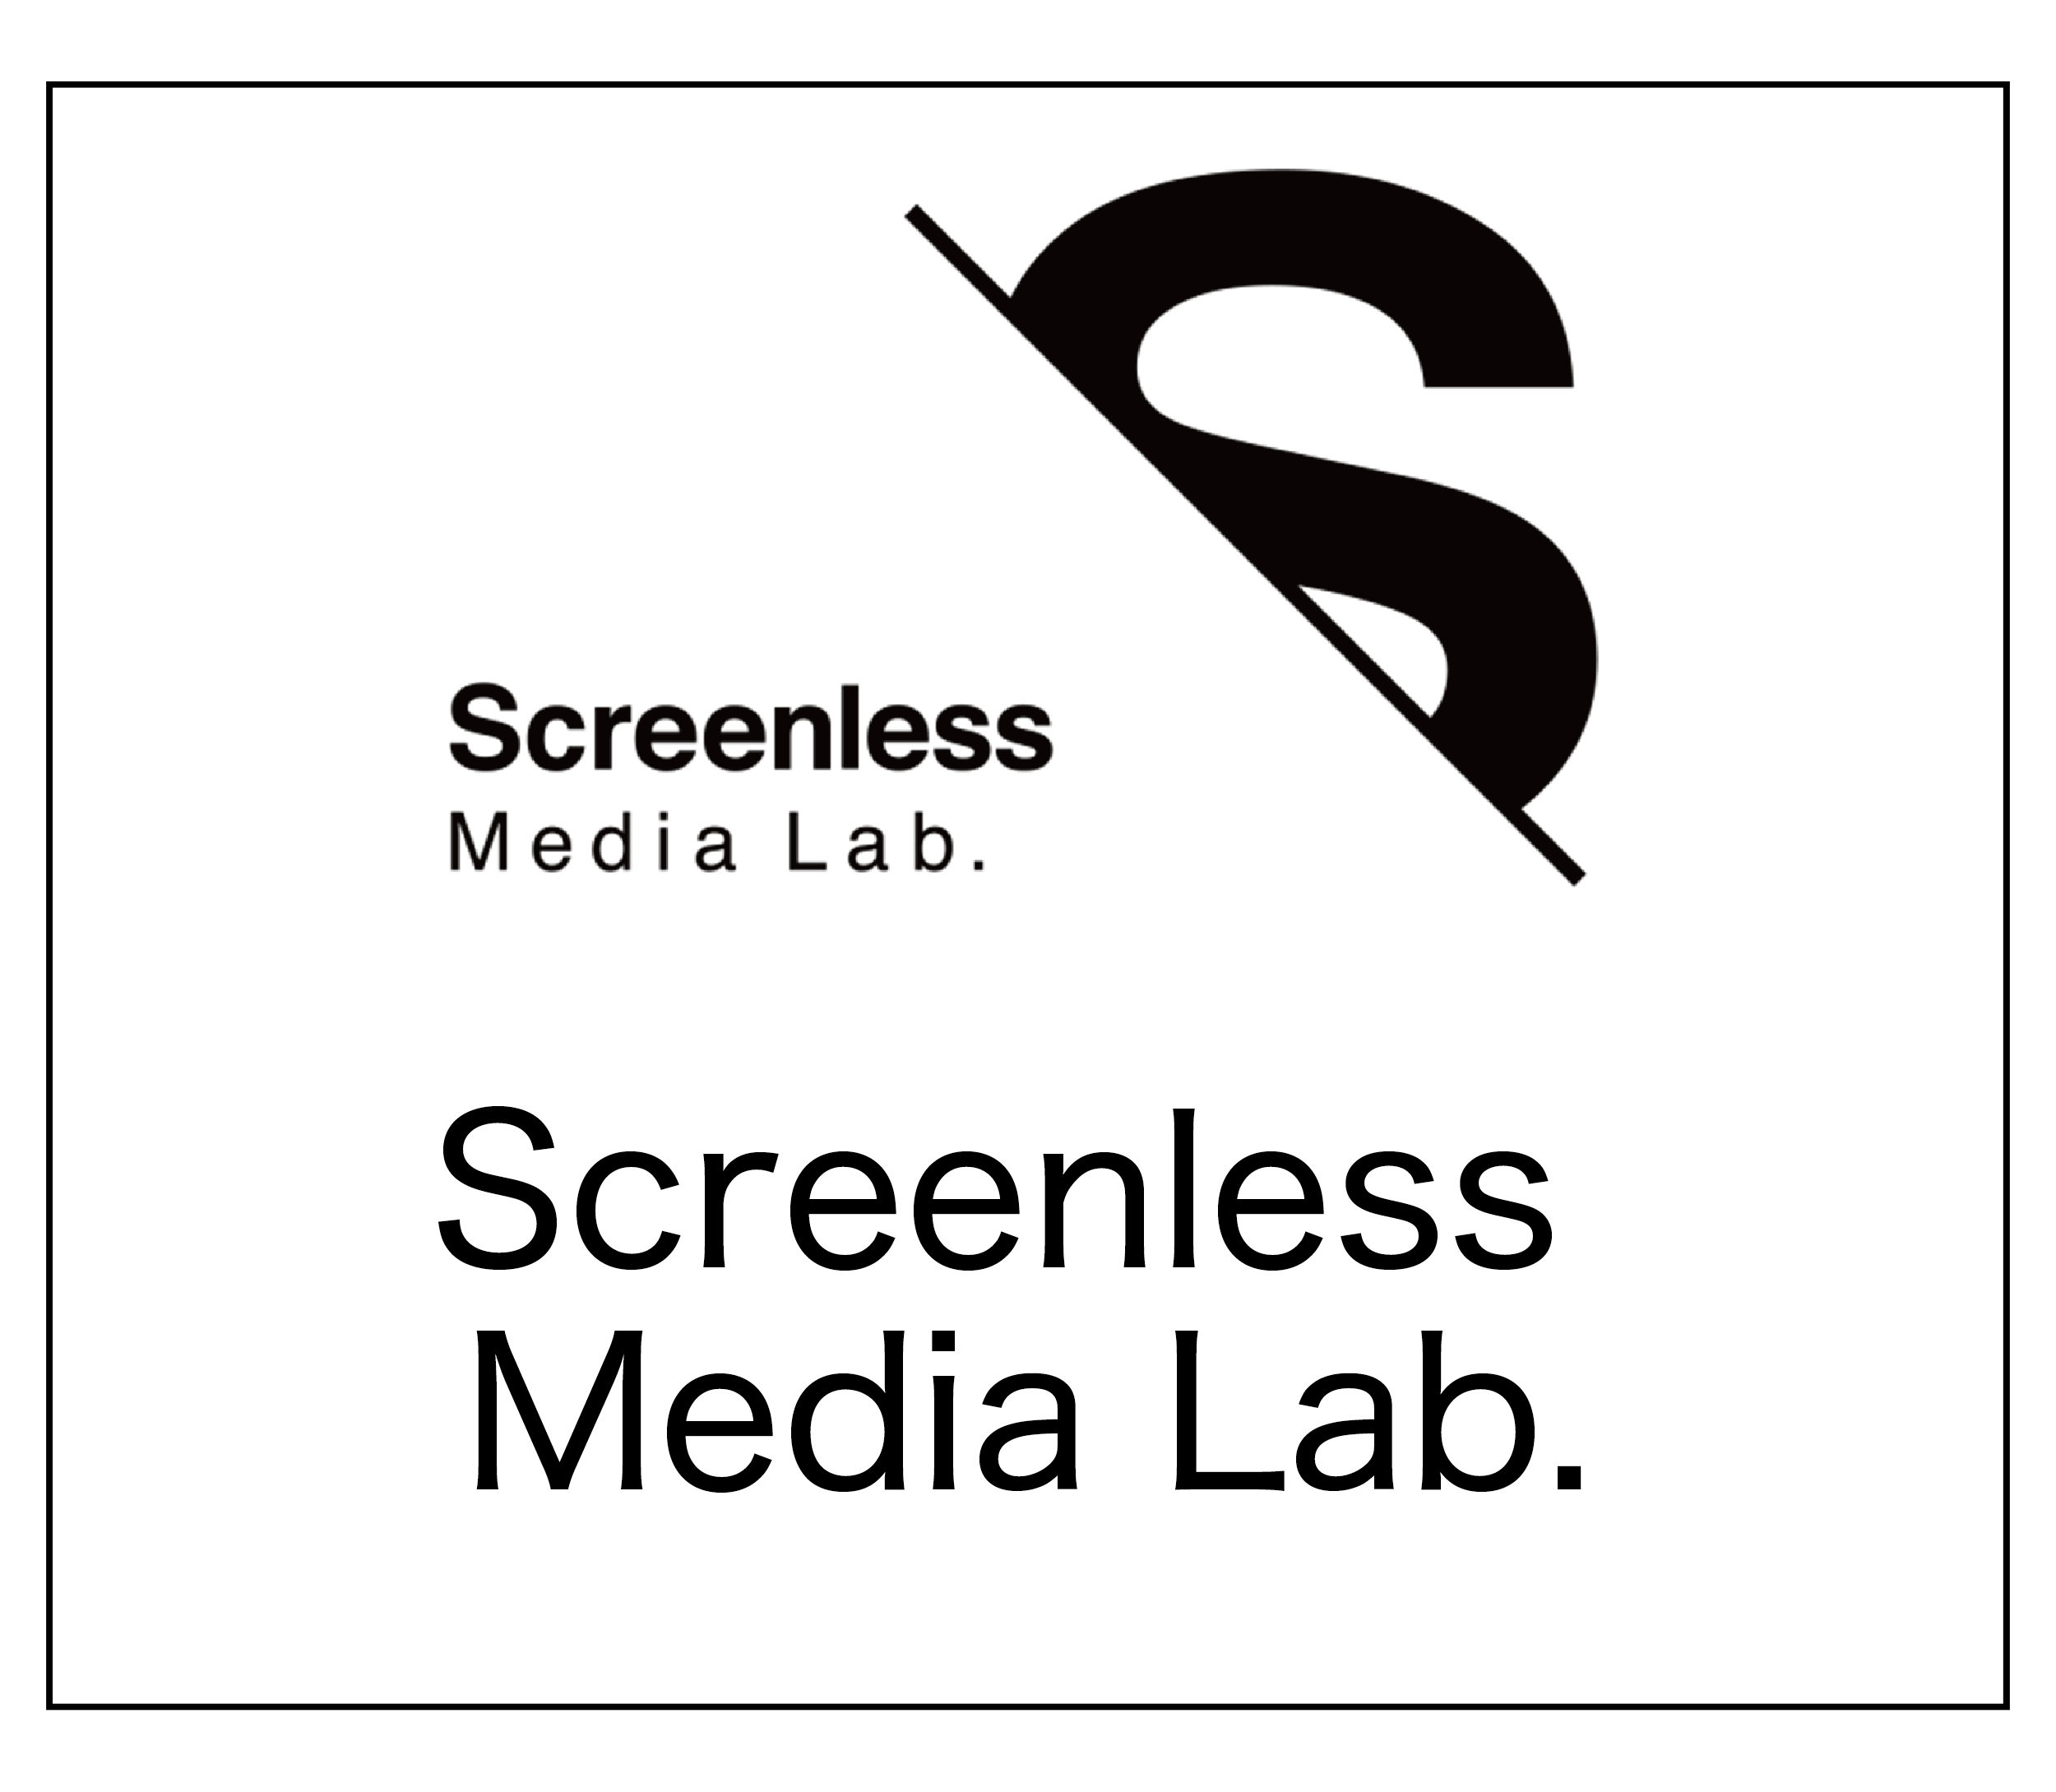 Screenless Media Lab.